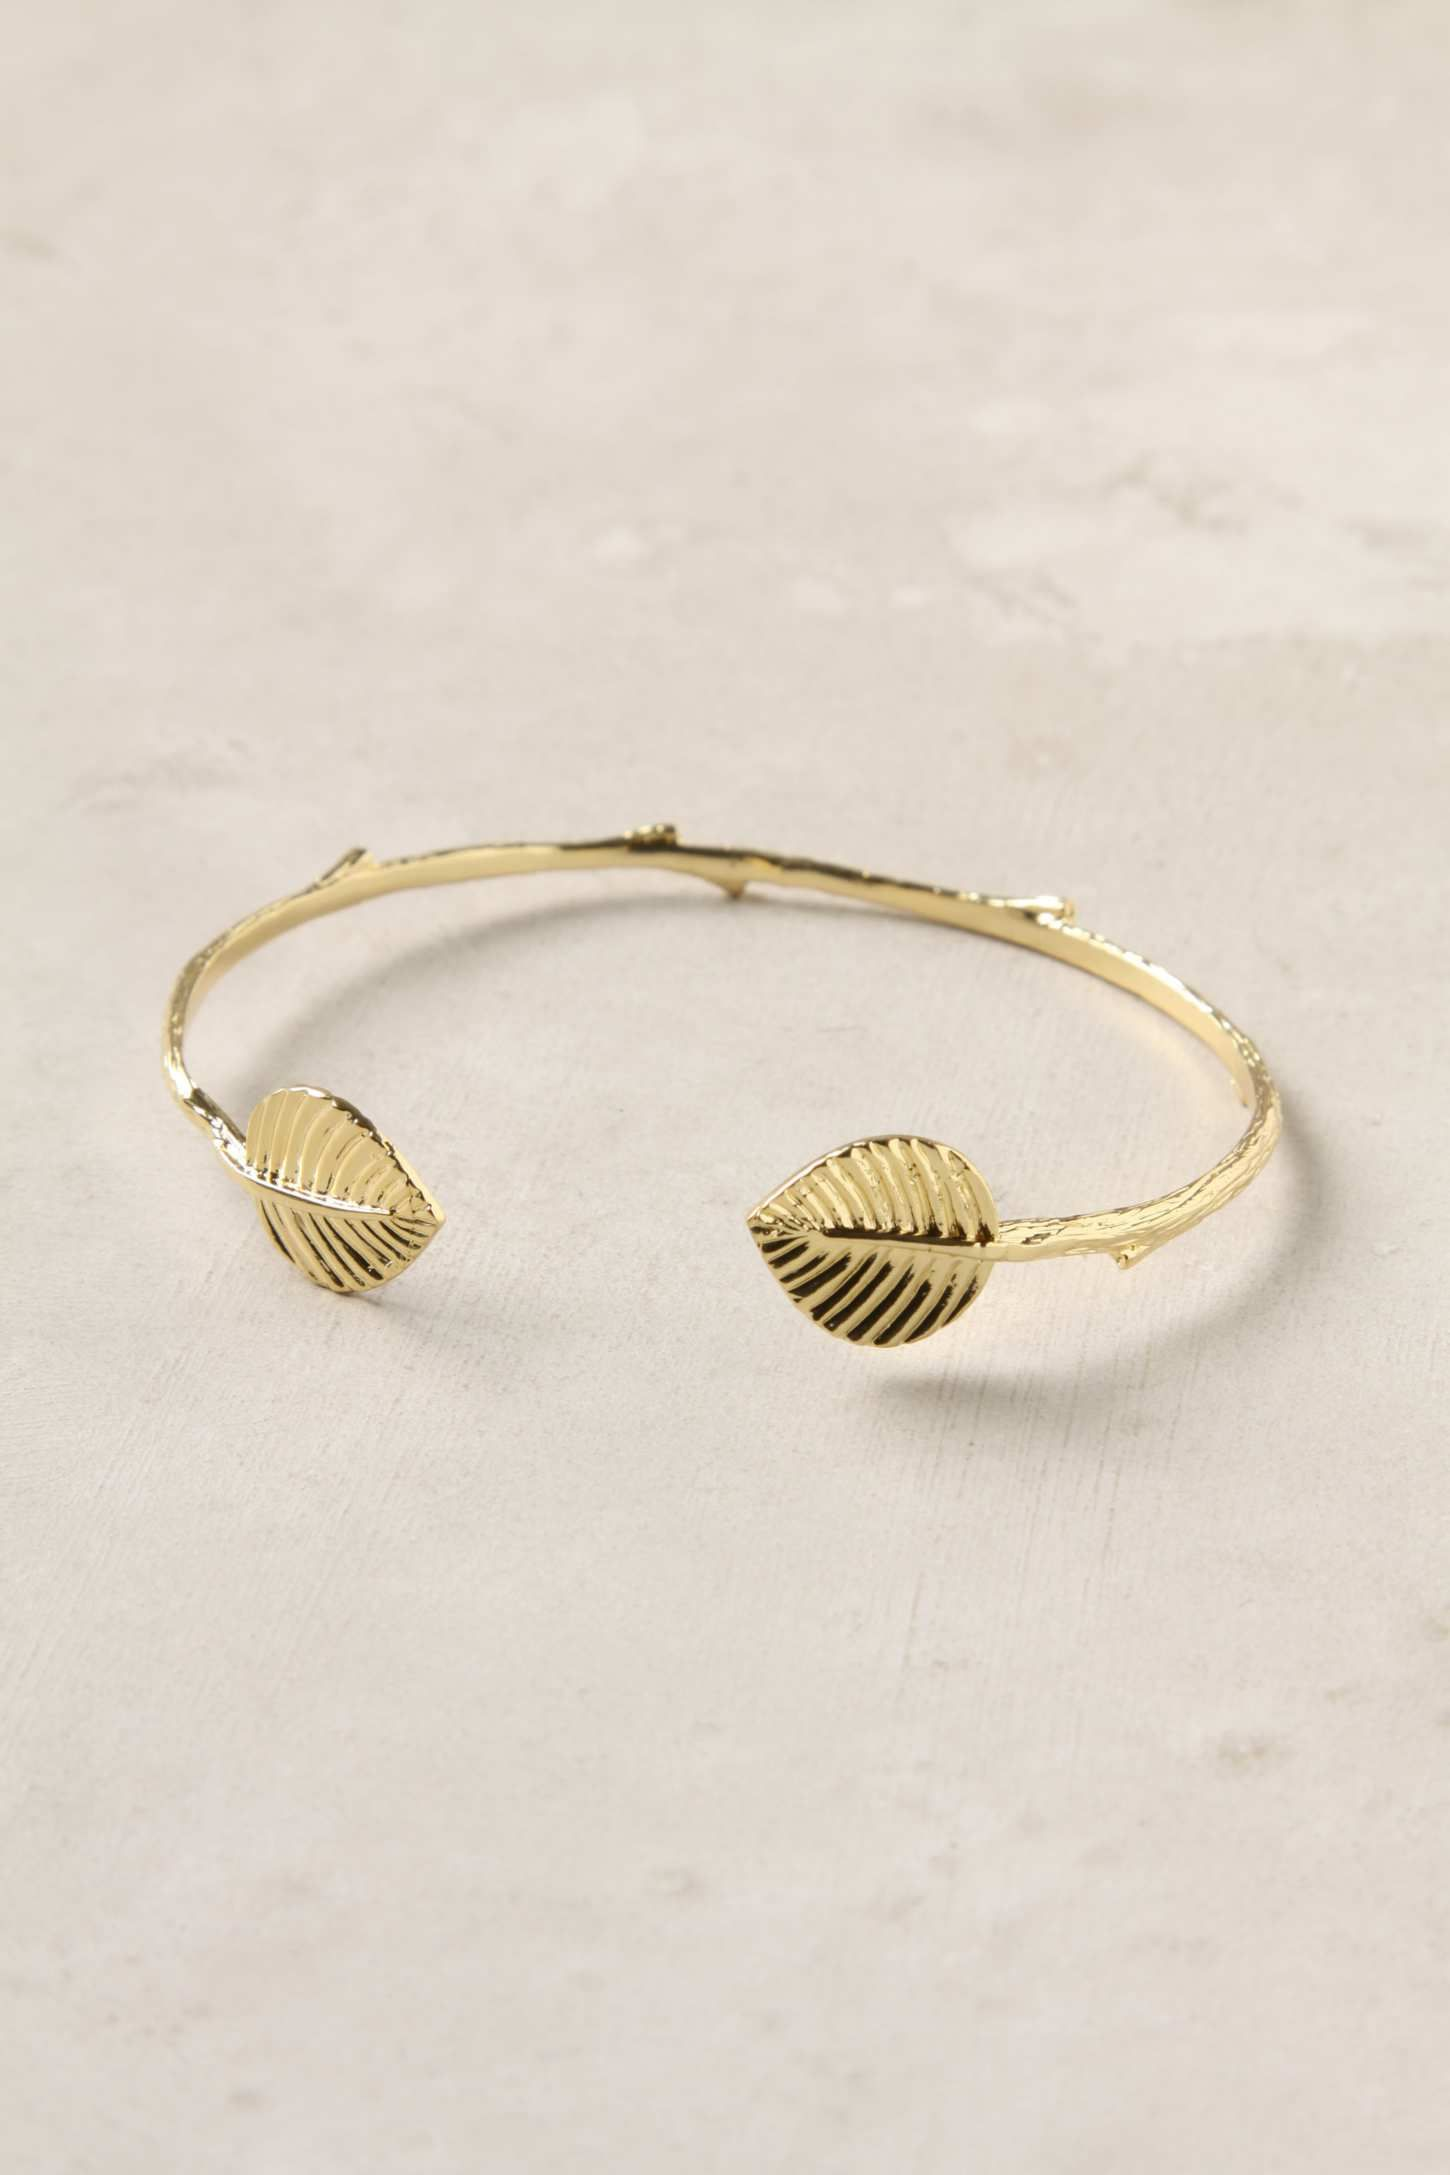 Twig bracelet anthropologie joyitas pinterest anthropologie